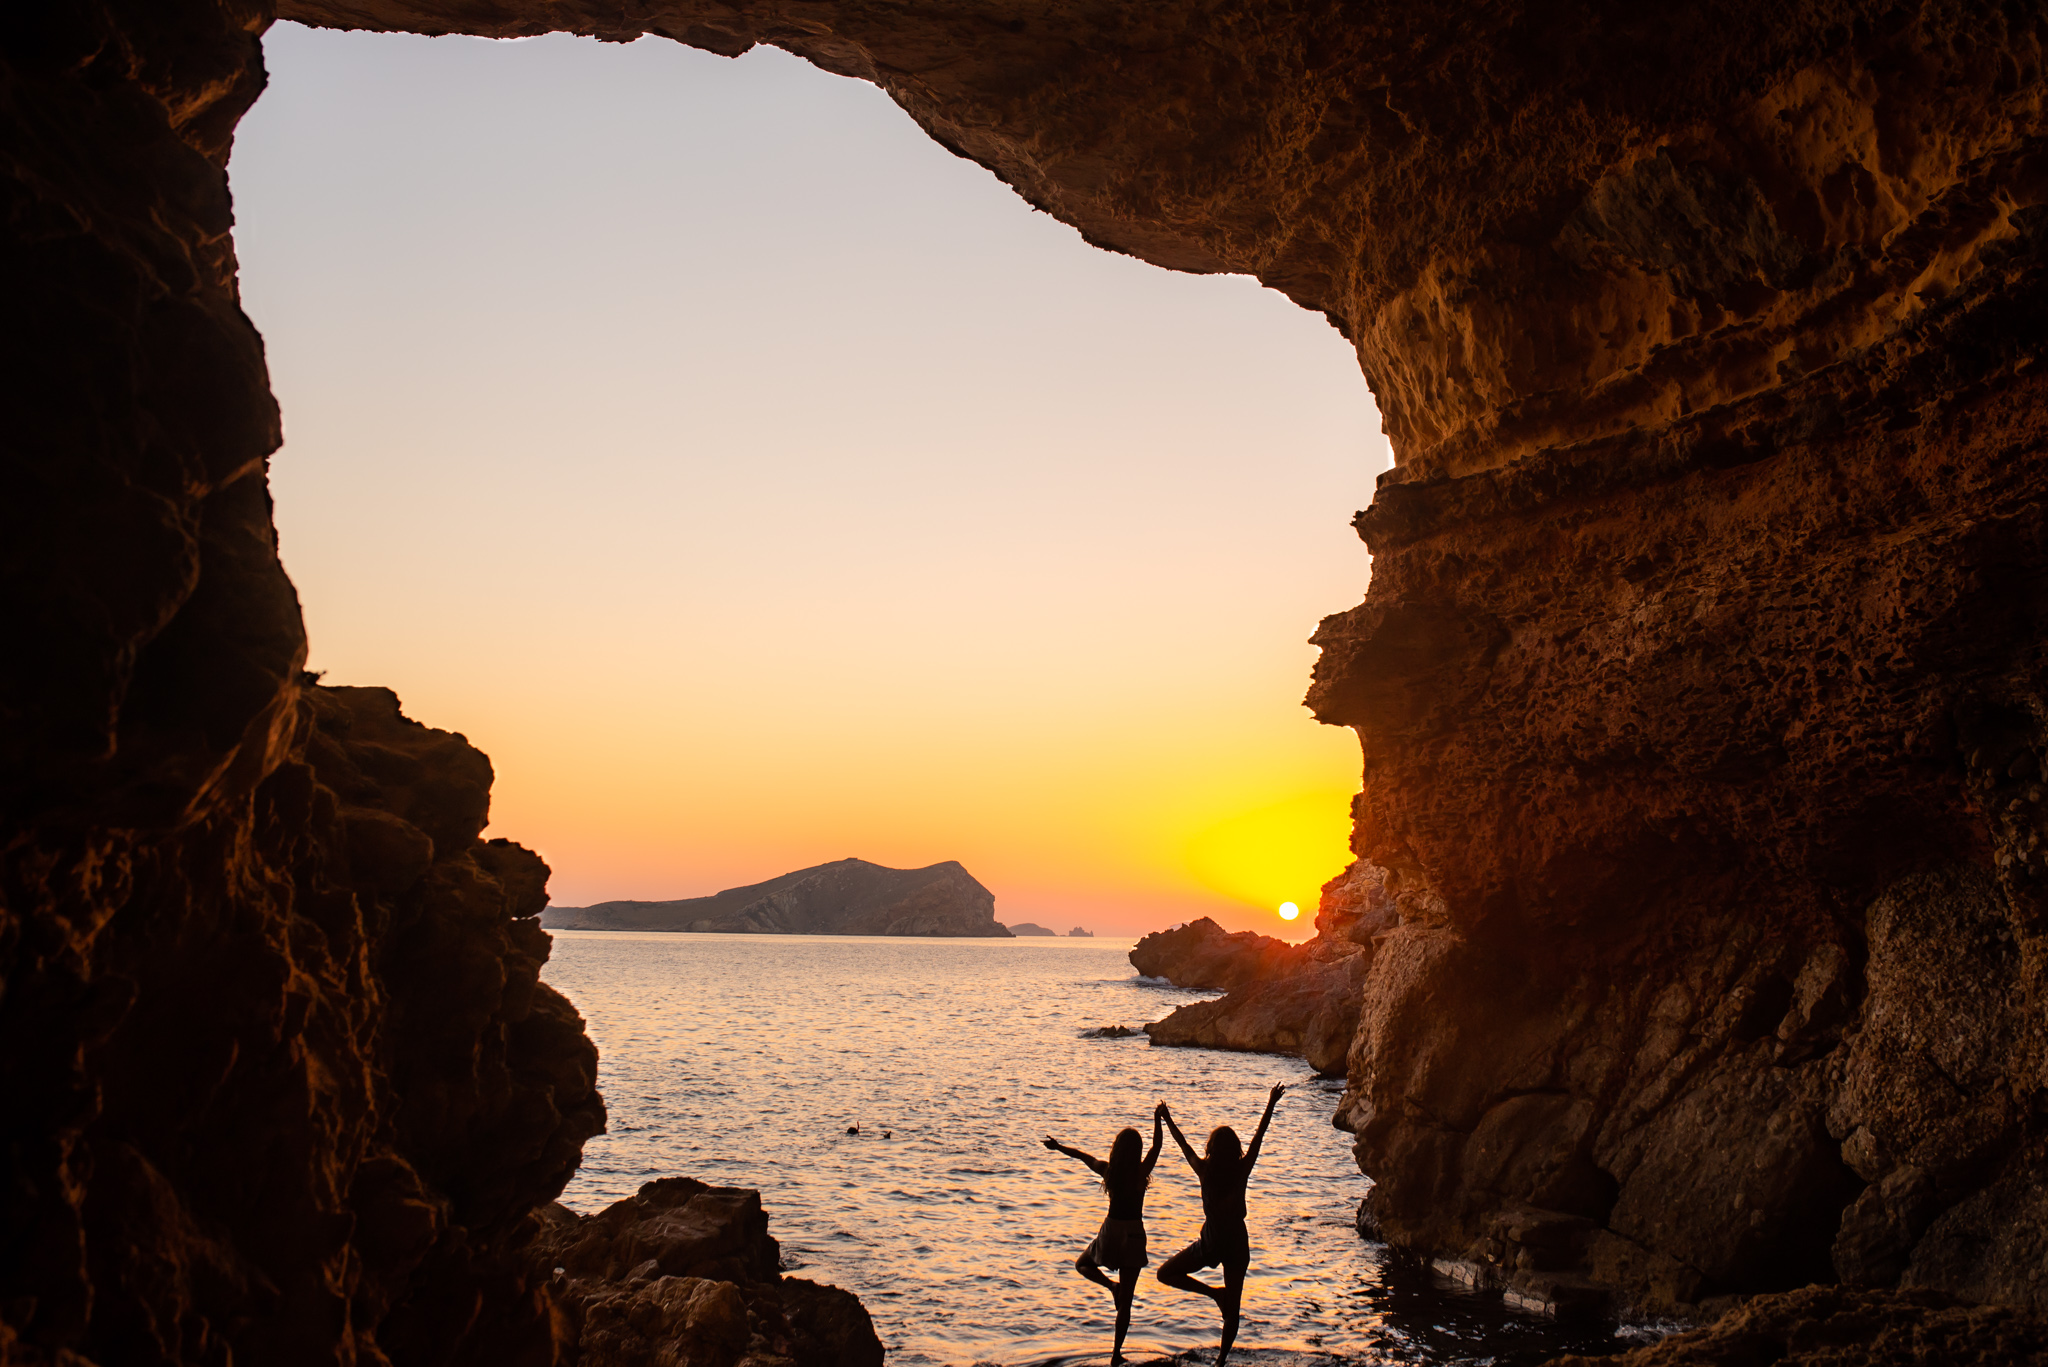 Landscape Photography Ibiza - Sunset